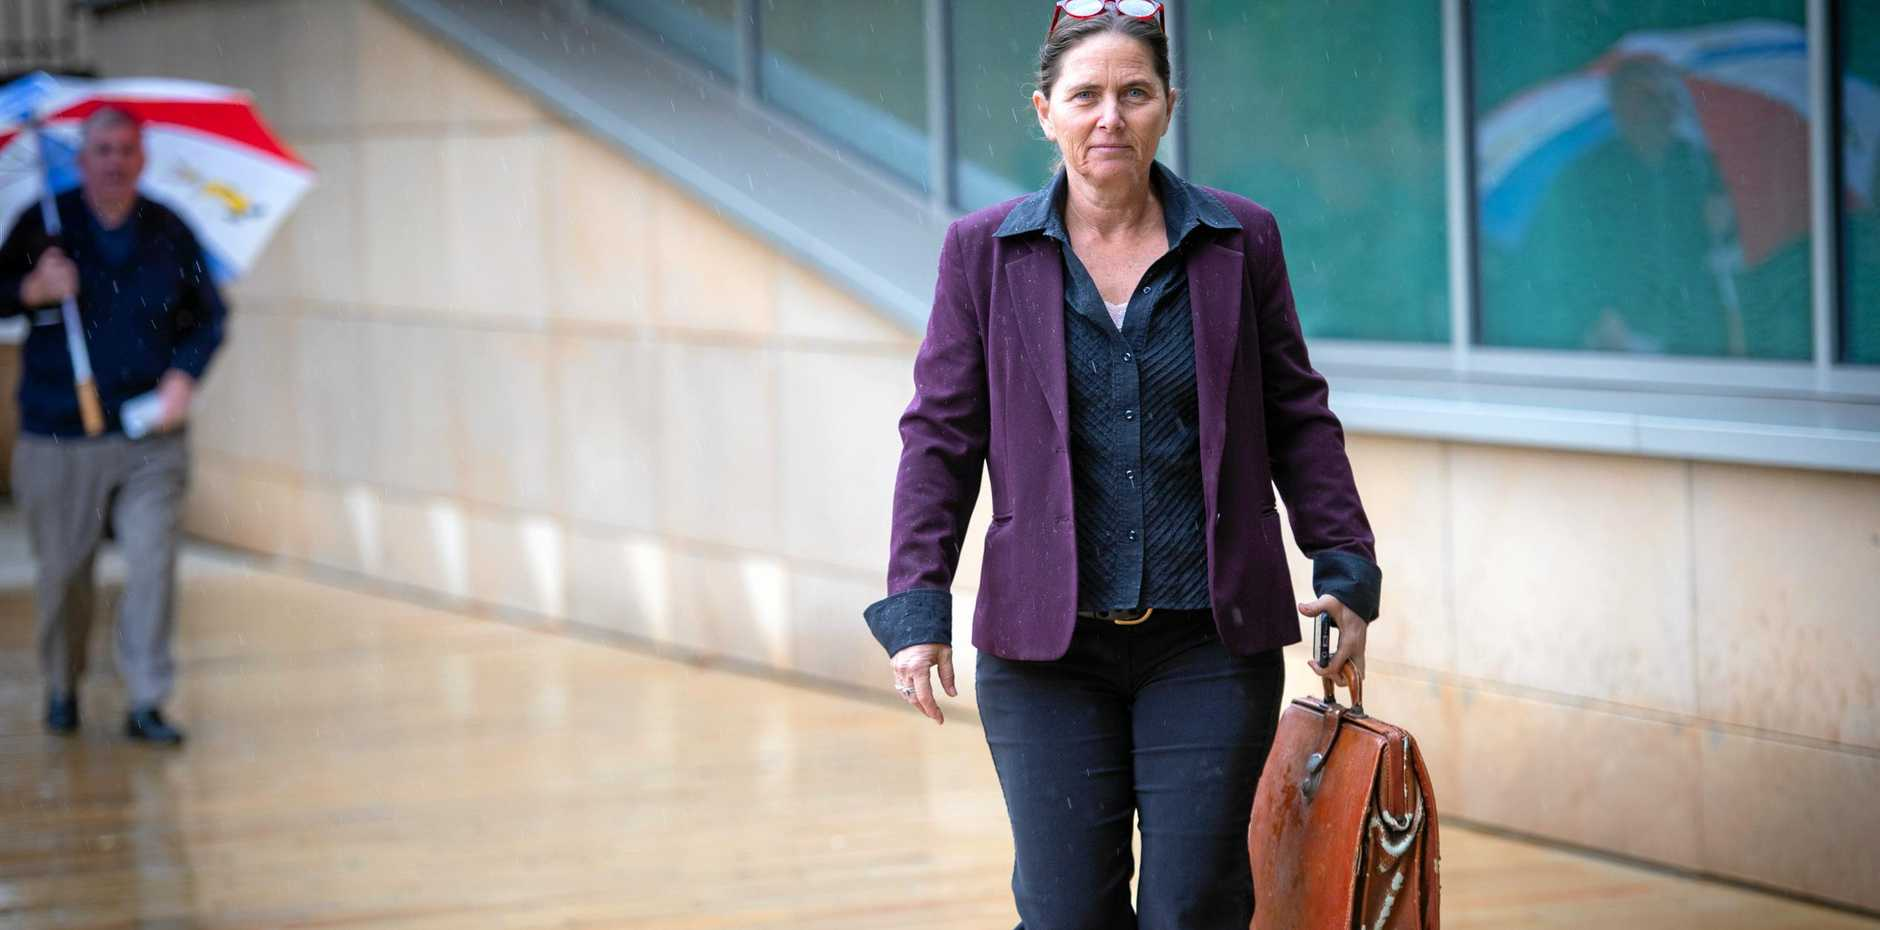 Sally Townley on her way to  Court hearing , challenging RMS information.. 24 JUNE 2019